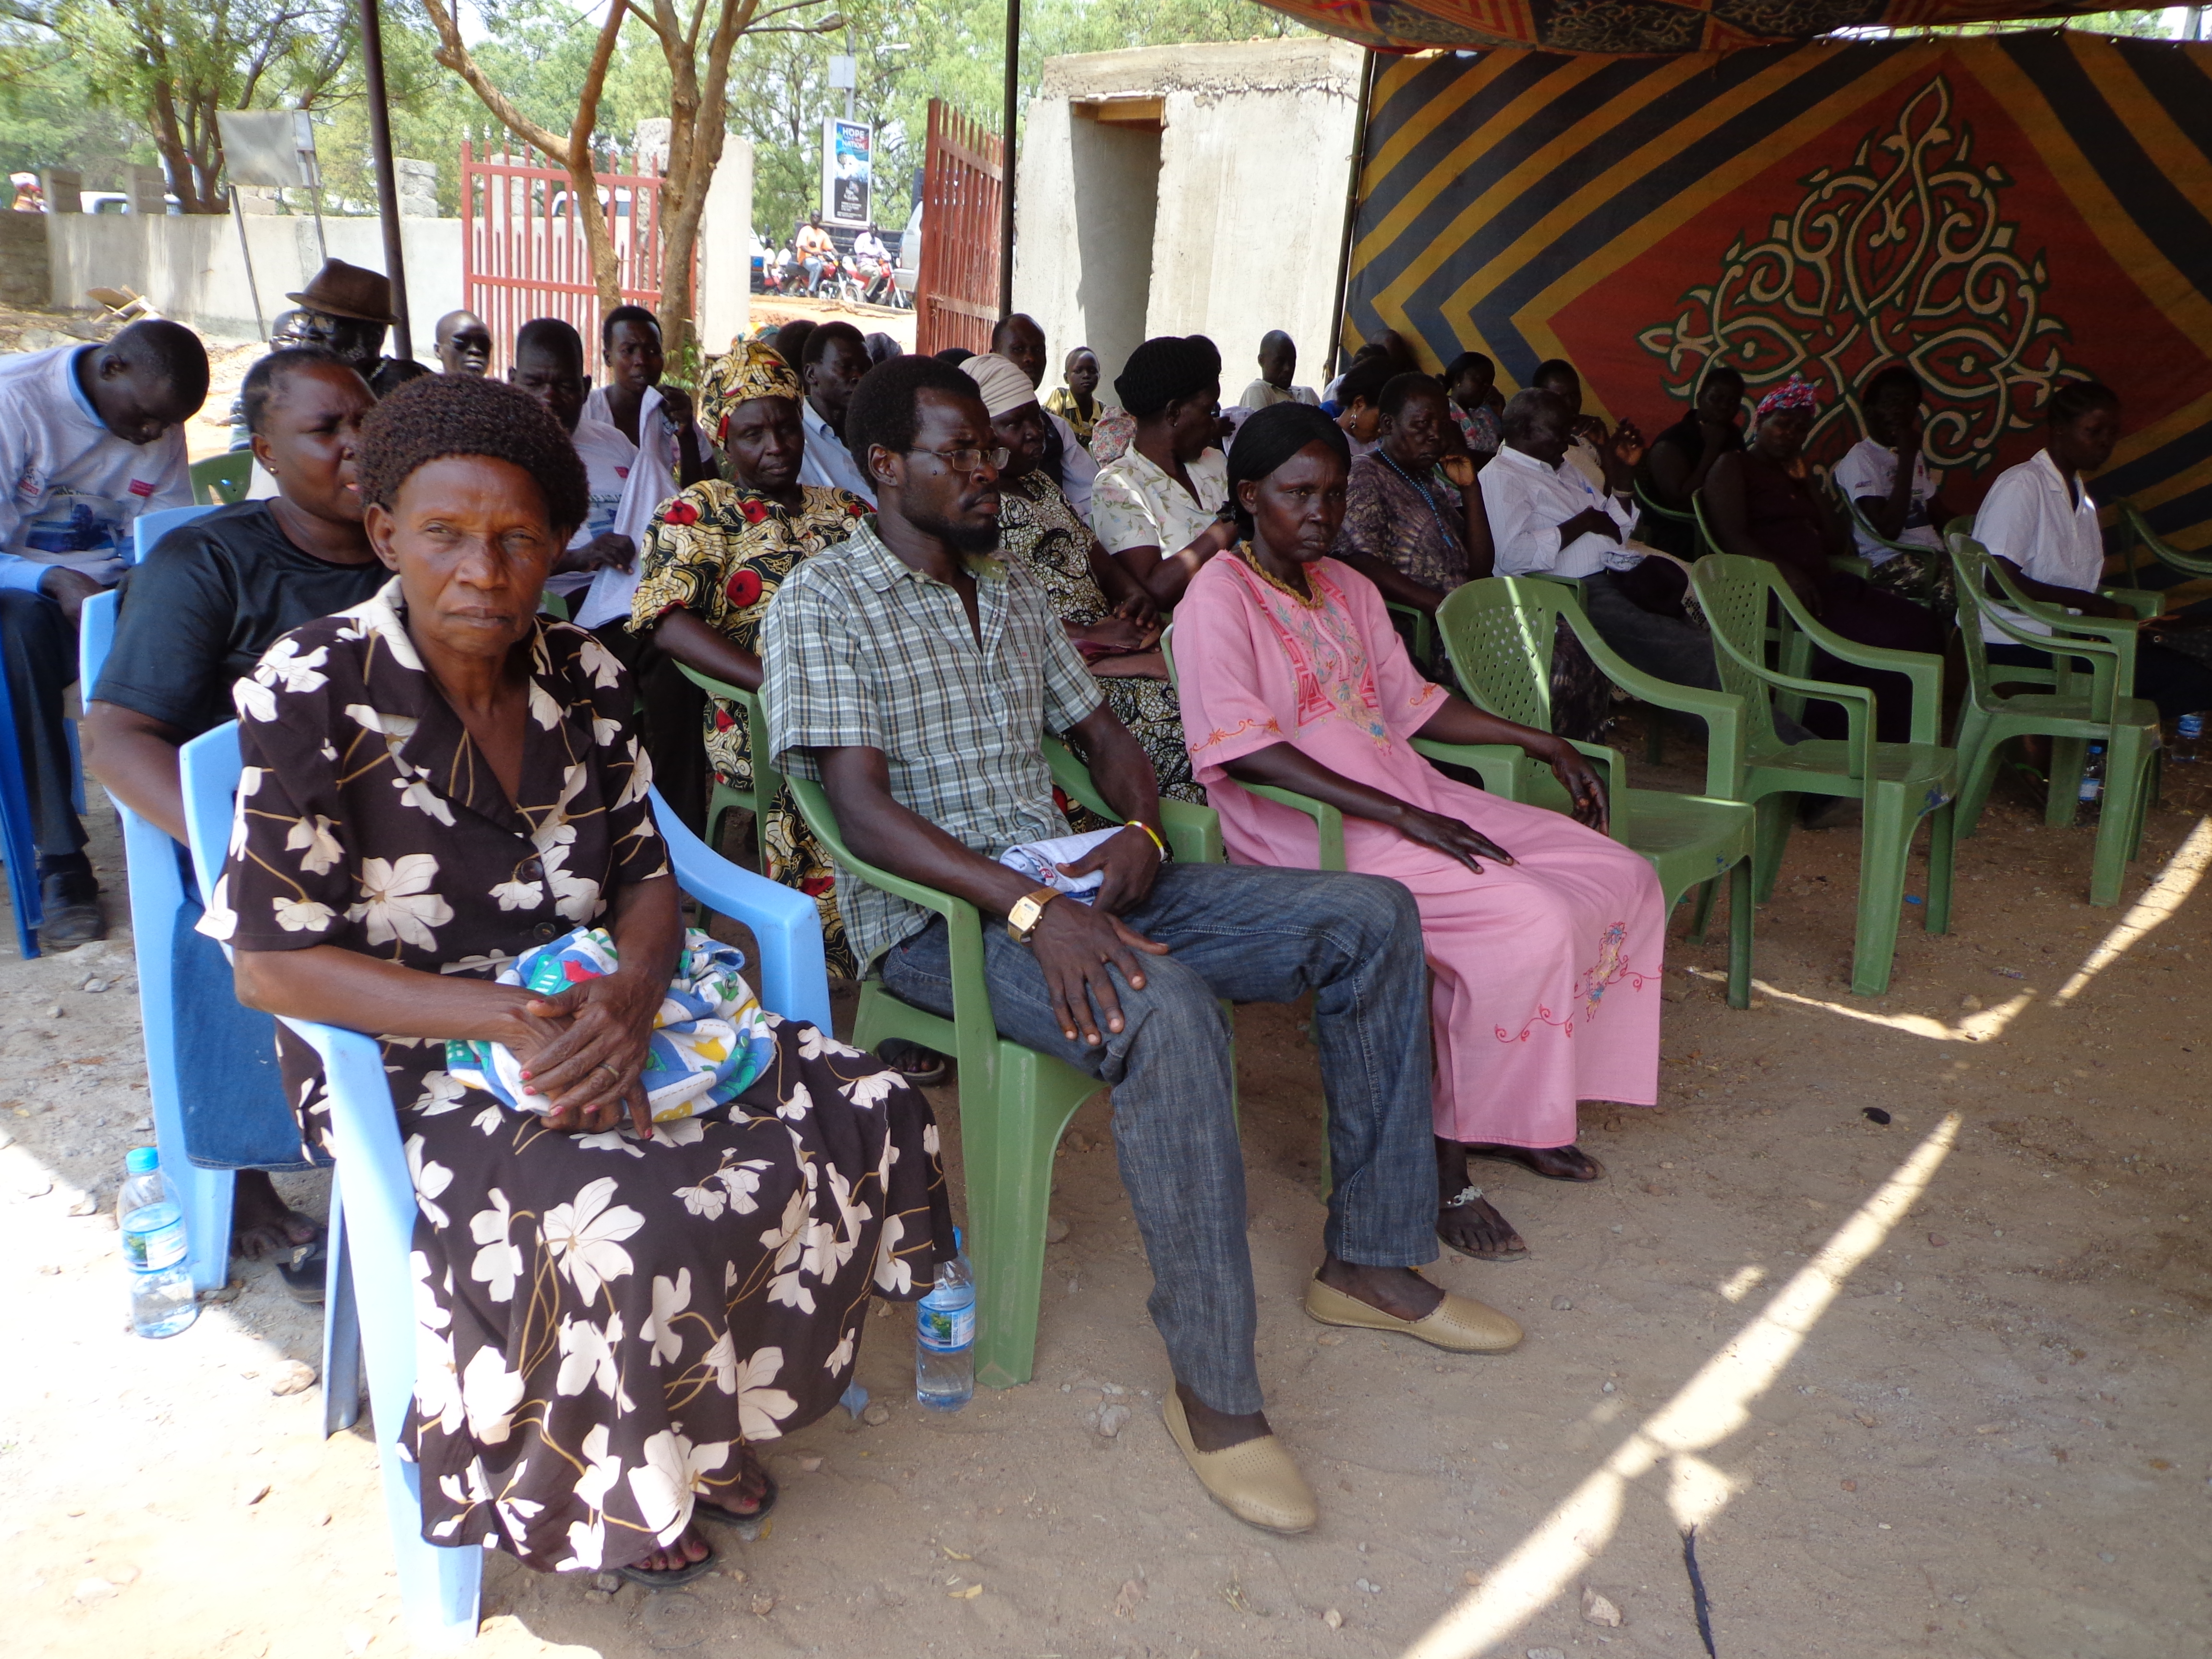 A group gather for Unjust Day in South Sudan.